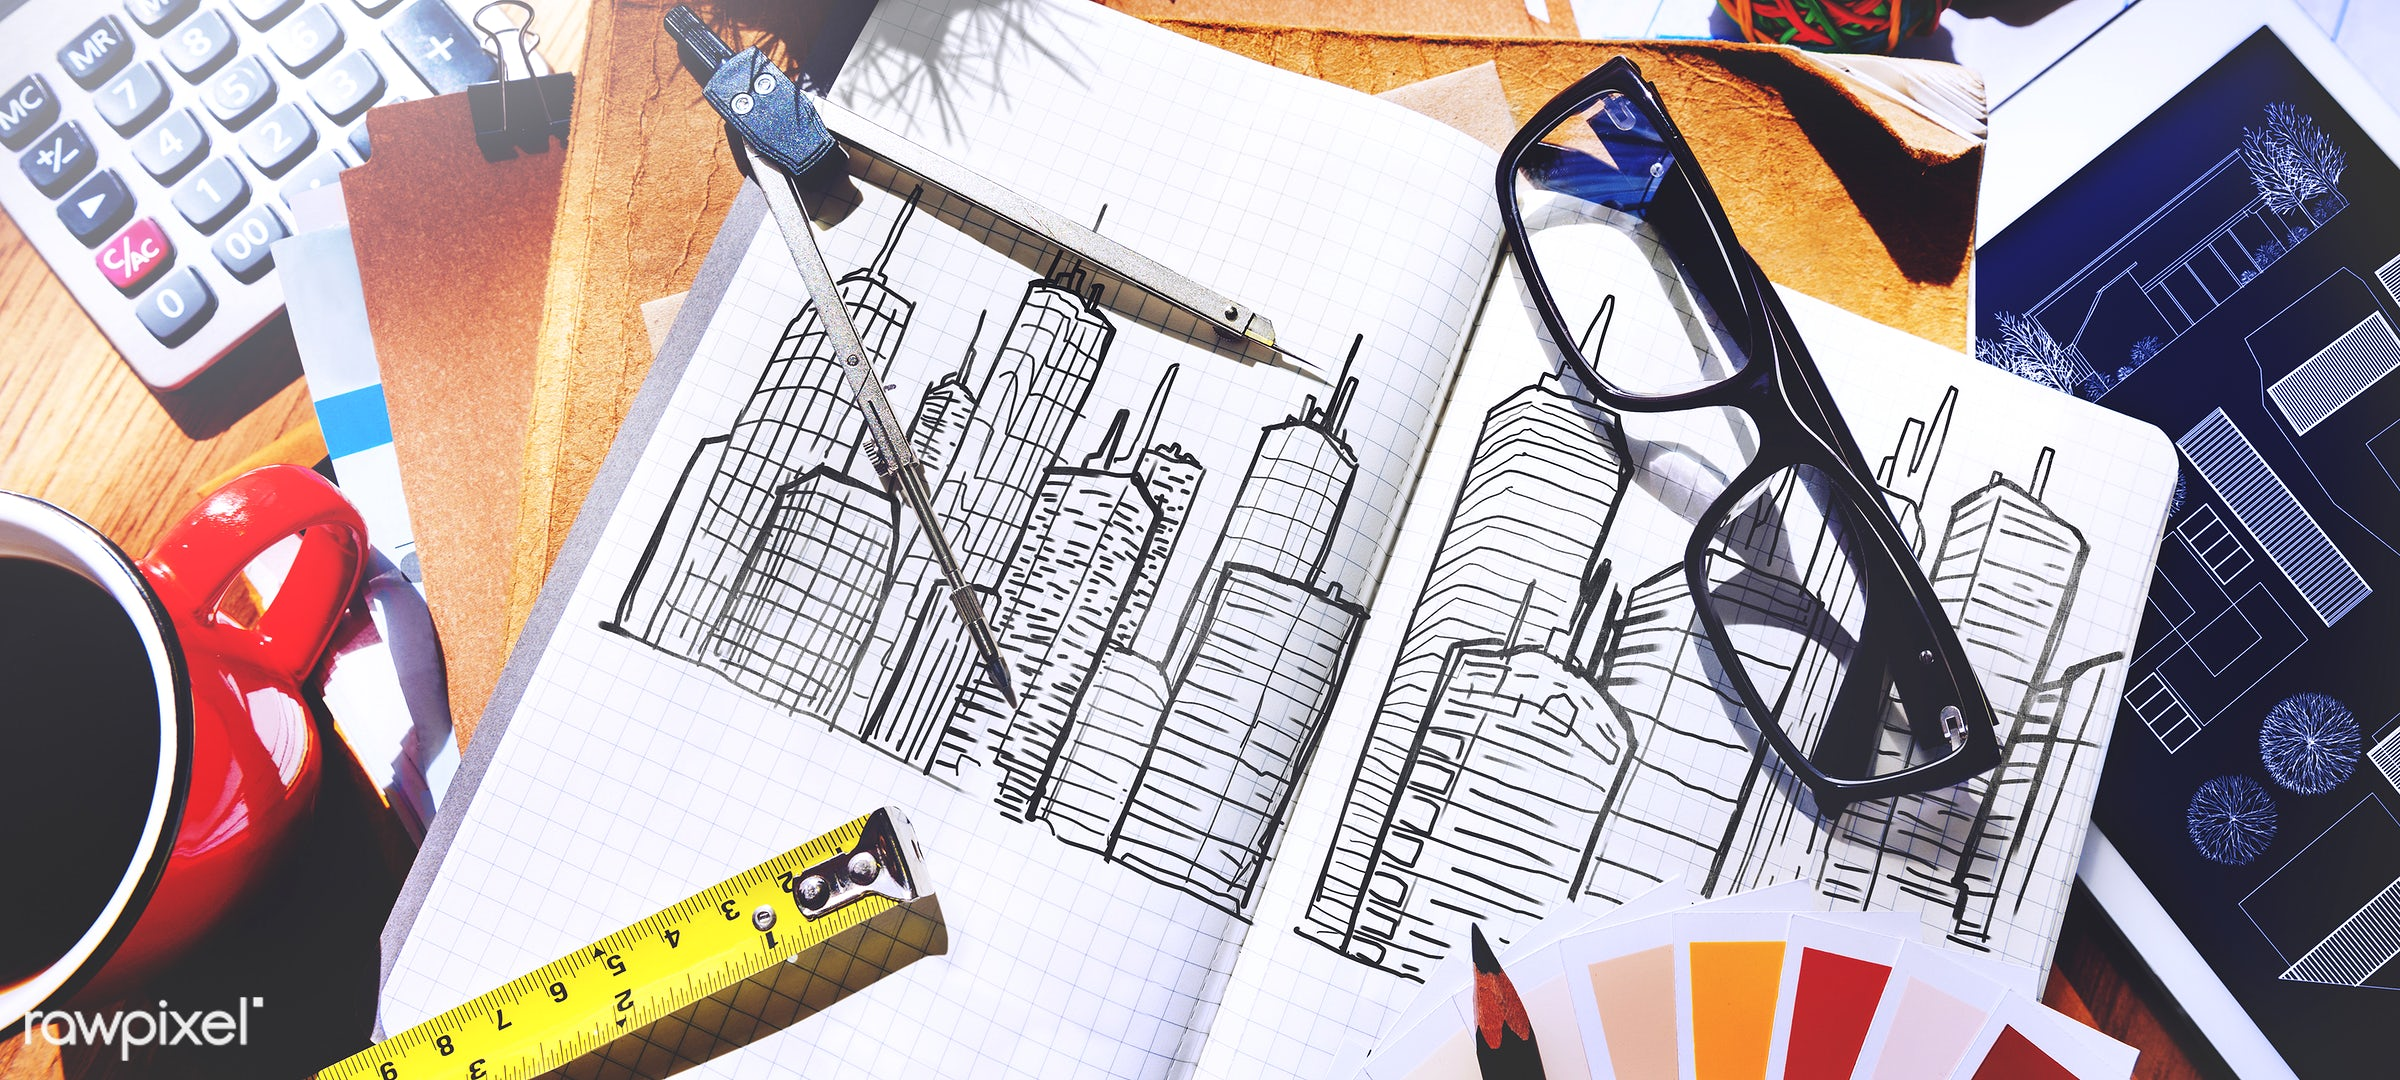 aerial, architecture, blue print, building, career, color swatch, design, drawing, engineering, equipment, nobody, notebook...